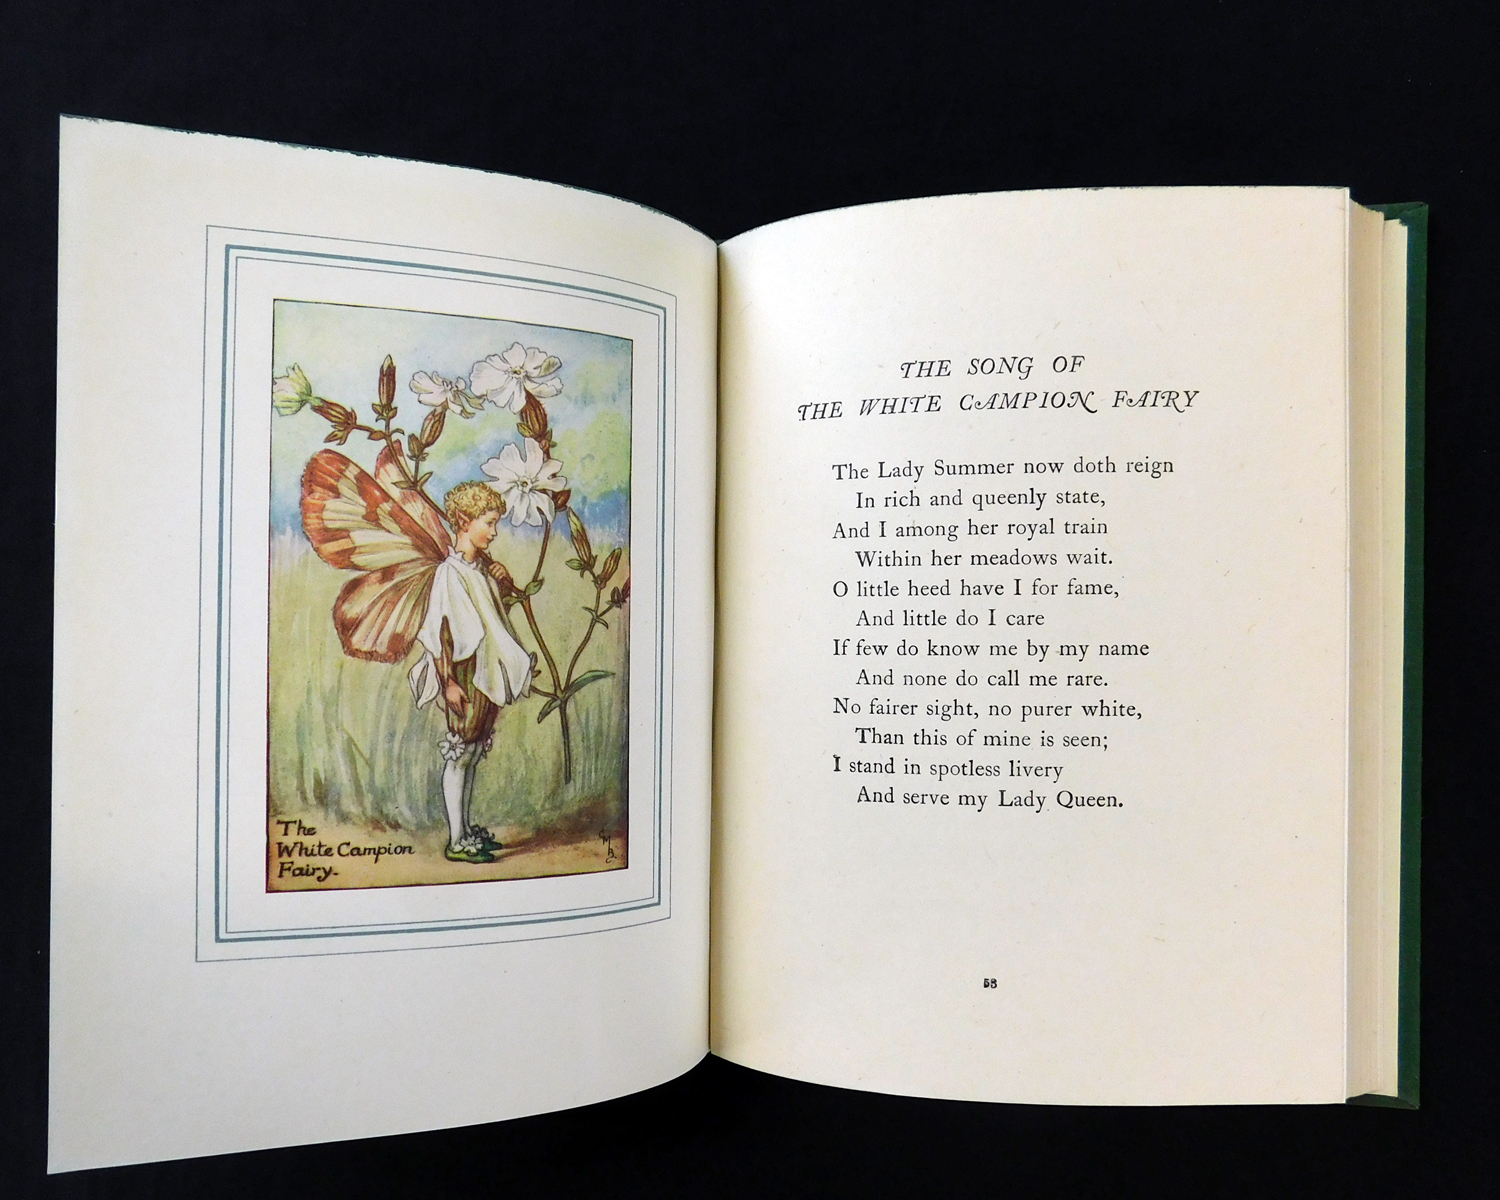 CICELY MARY BARKER: THE BOOK OF THE FLOWER FAIRIES, London and Glasgow, Blackie & Son Ltd, circa - Image 5 of 6